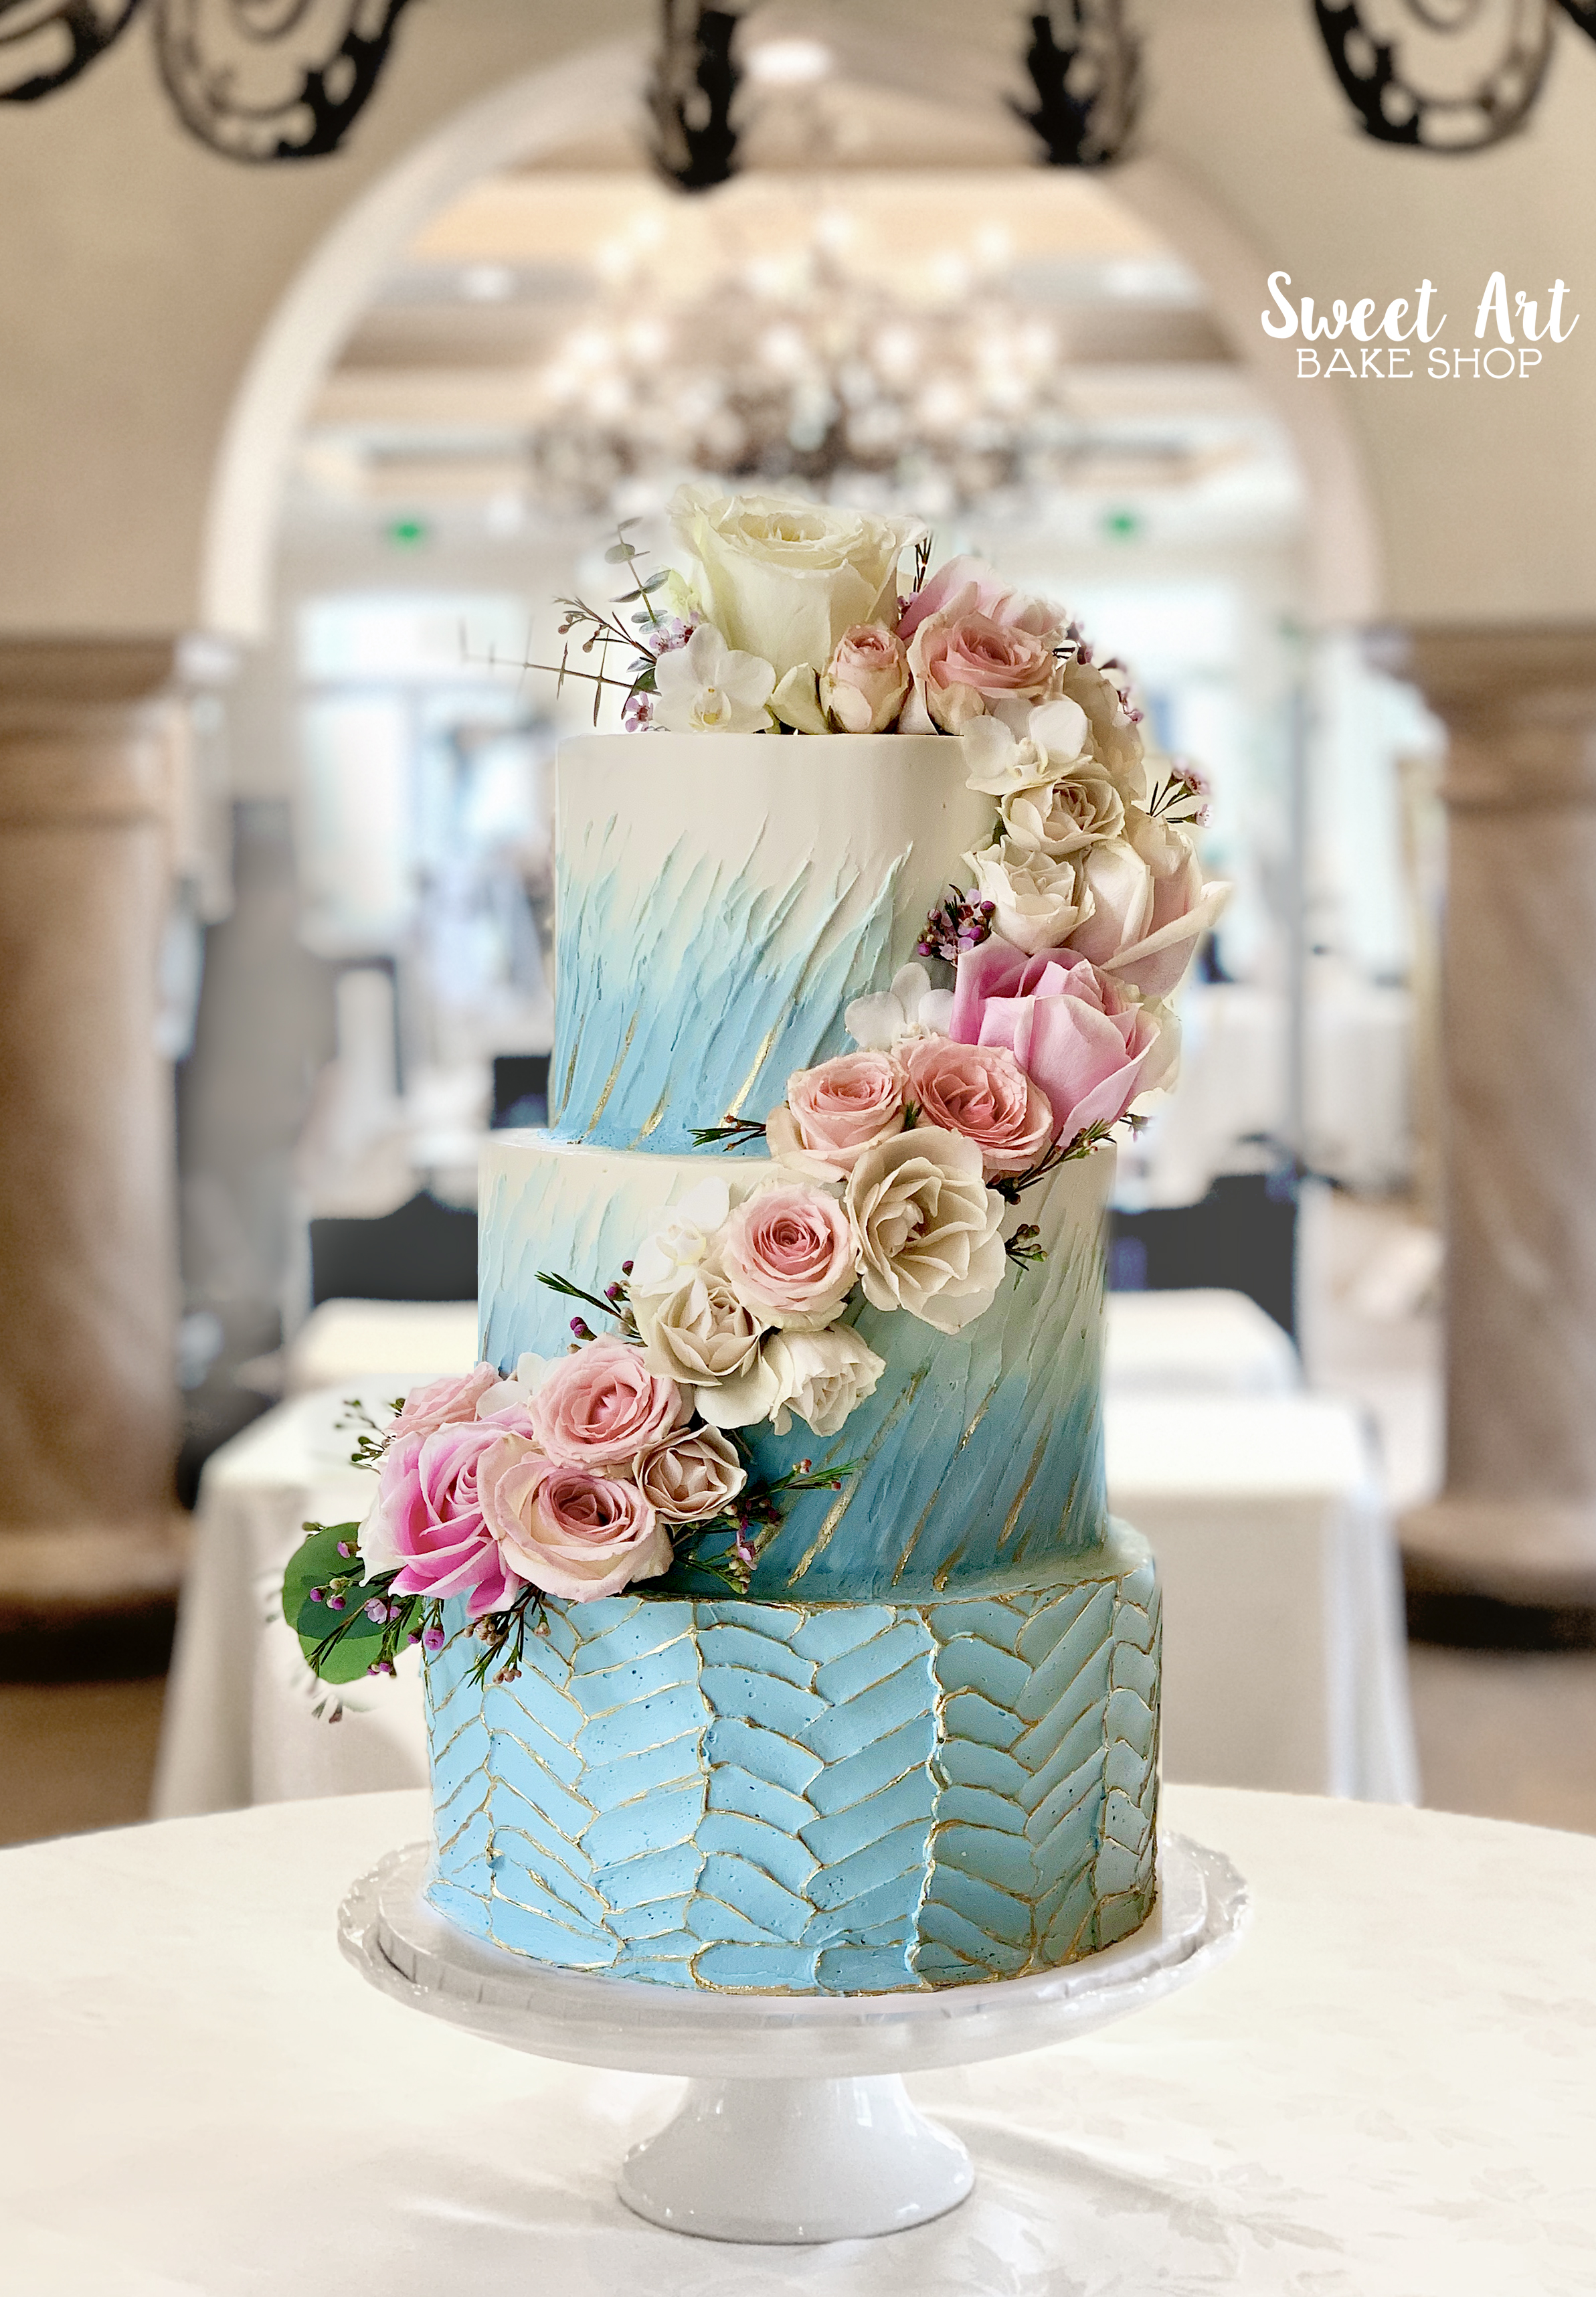 Sweet Art Bake Shop Wedding Cakes